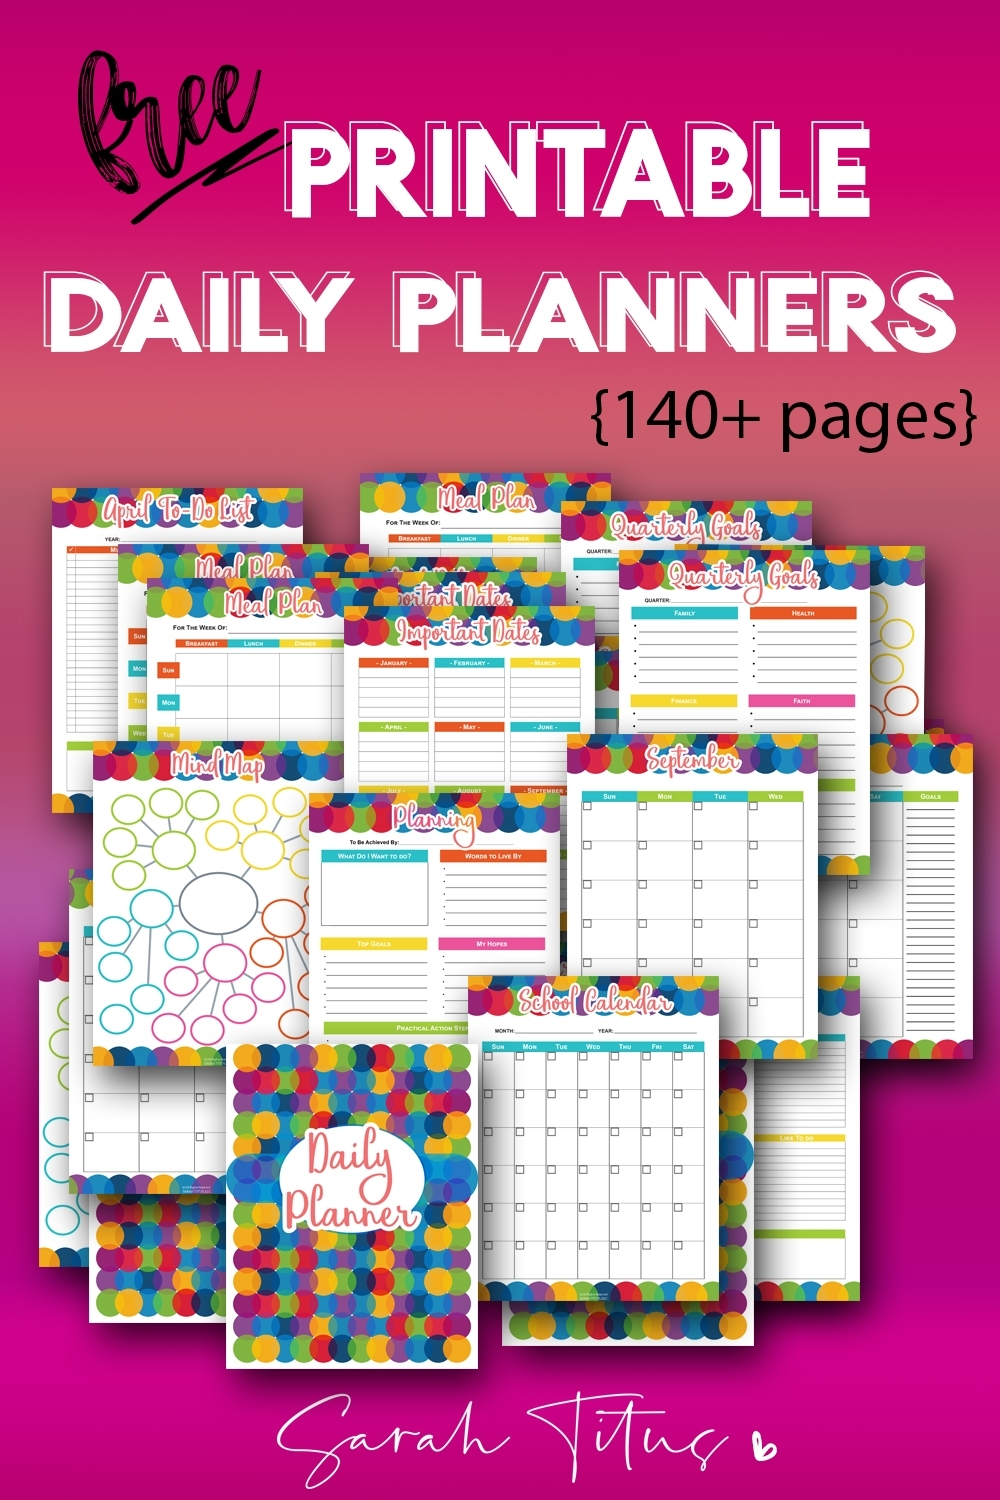 150+ Free Printable Daily Planner Templates That Will Save